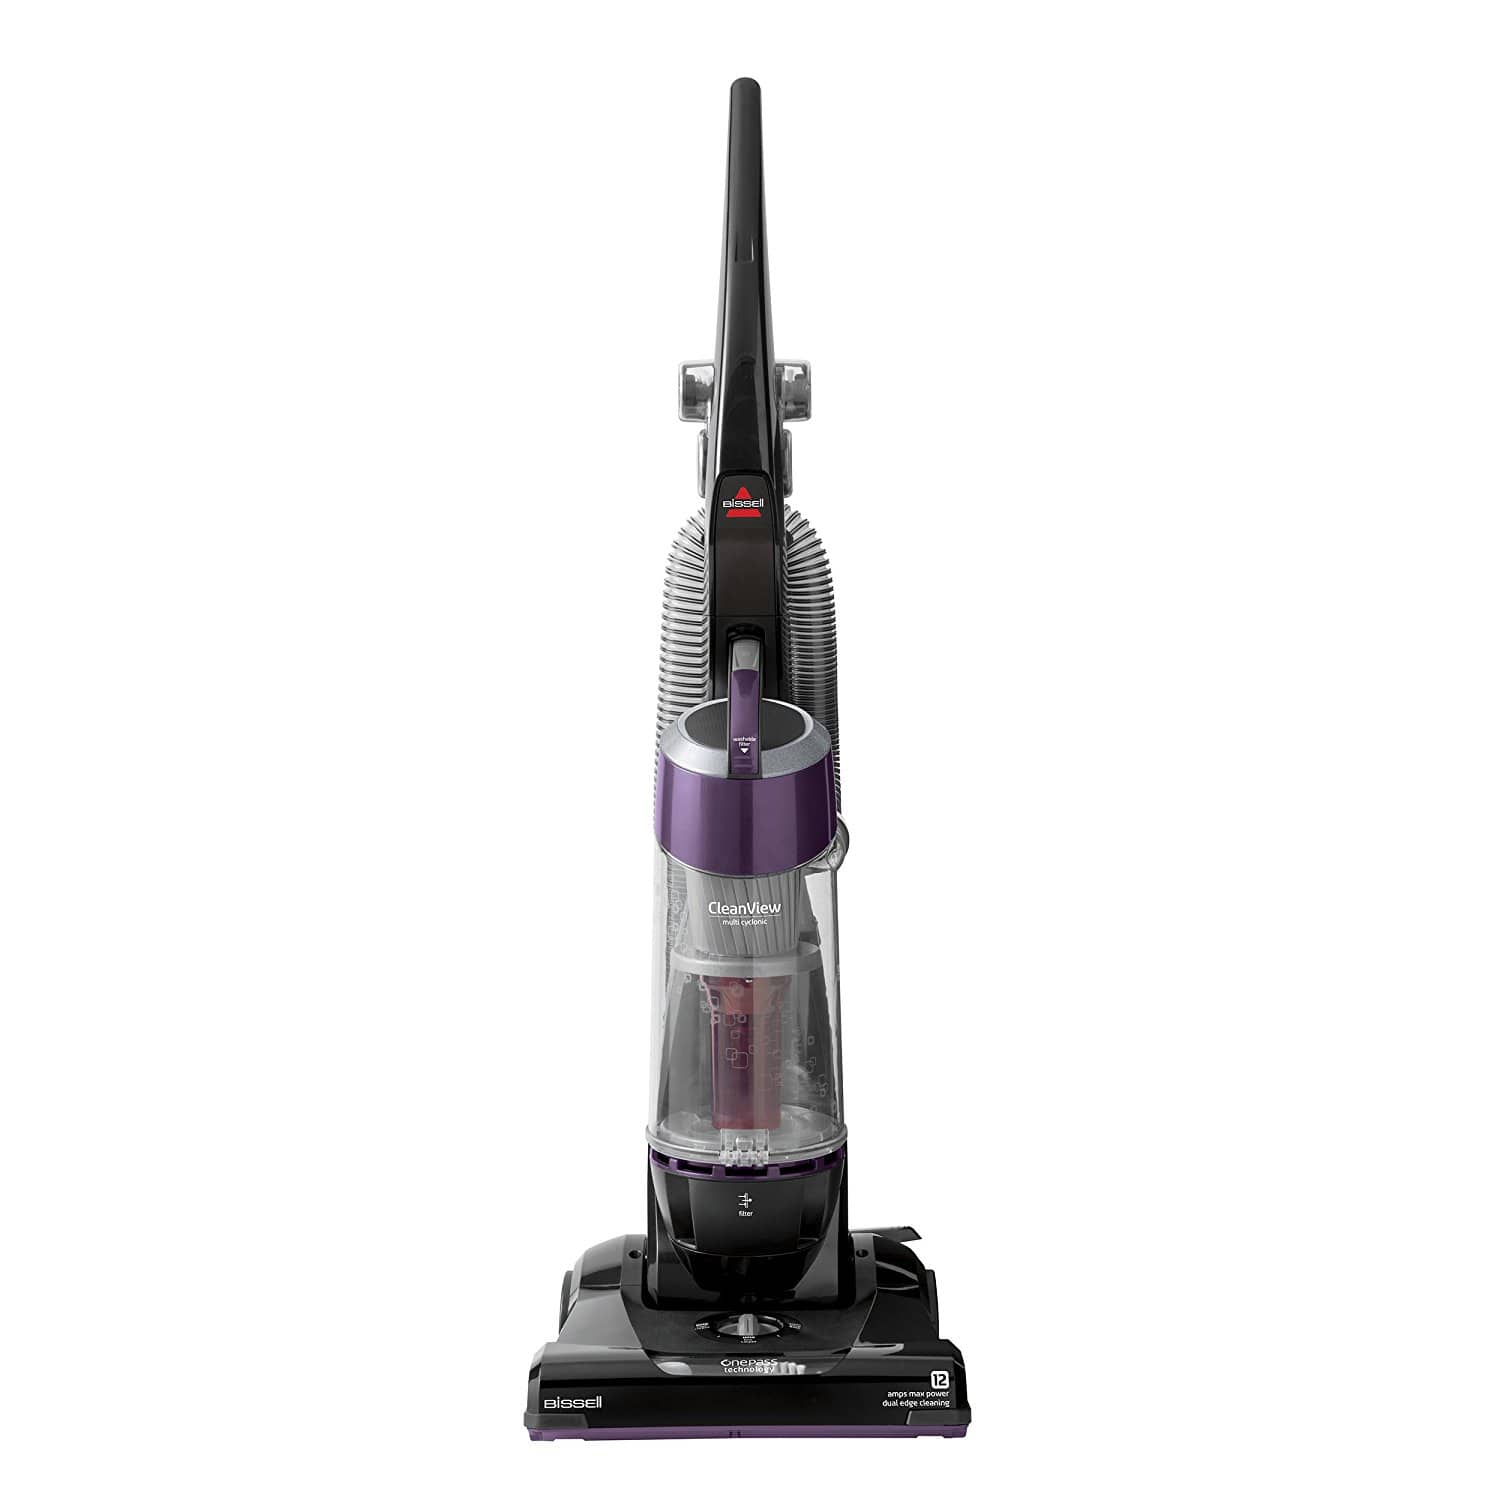 Bissell CleanView Upright Vacuum w/ OnePass (9595A) $59.98 + Free Shipping via Amazon